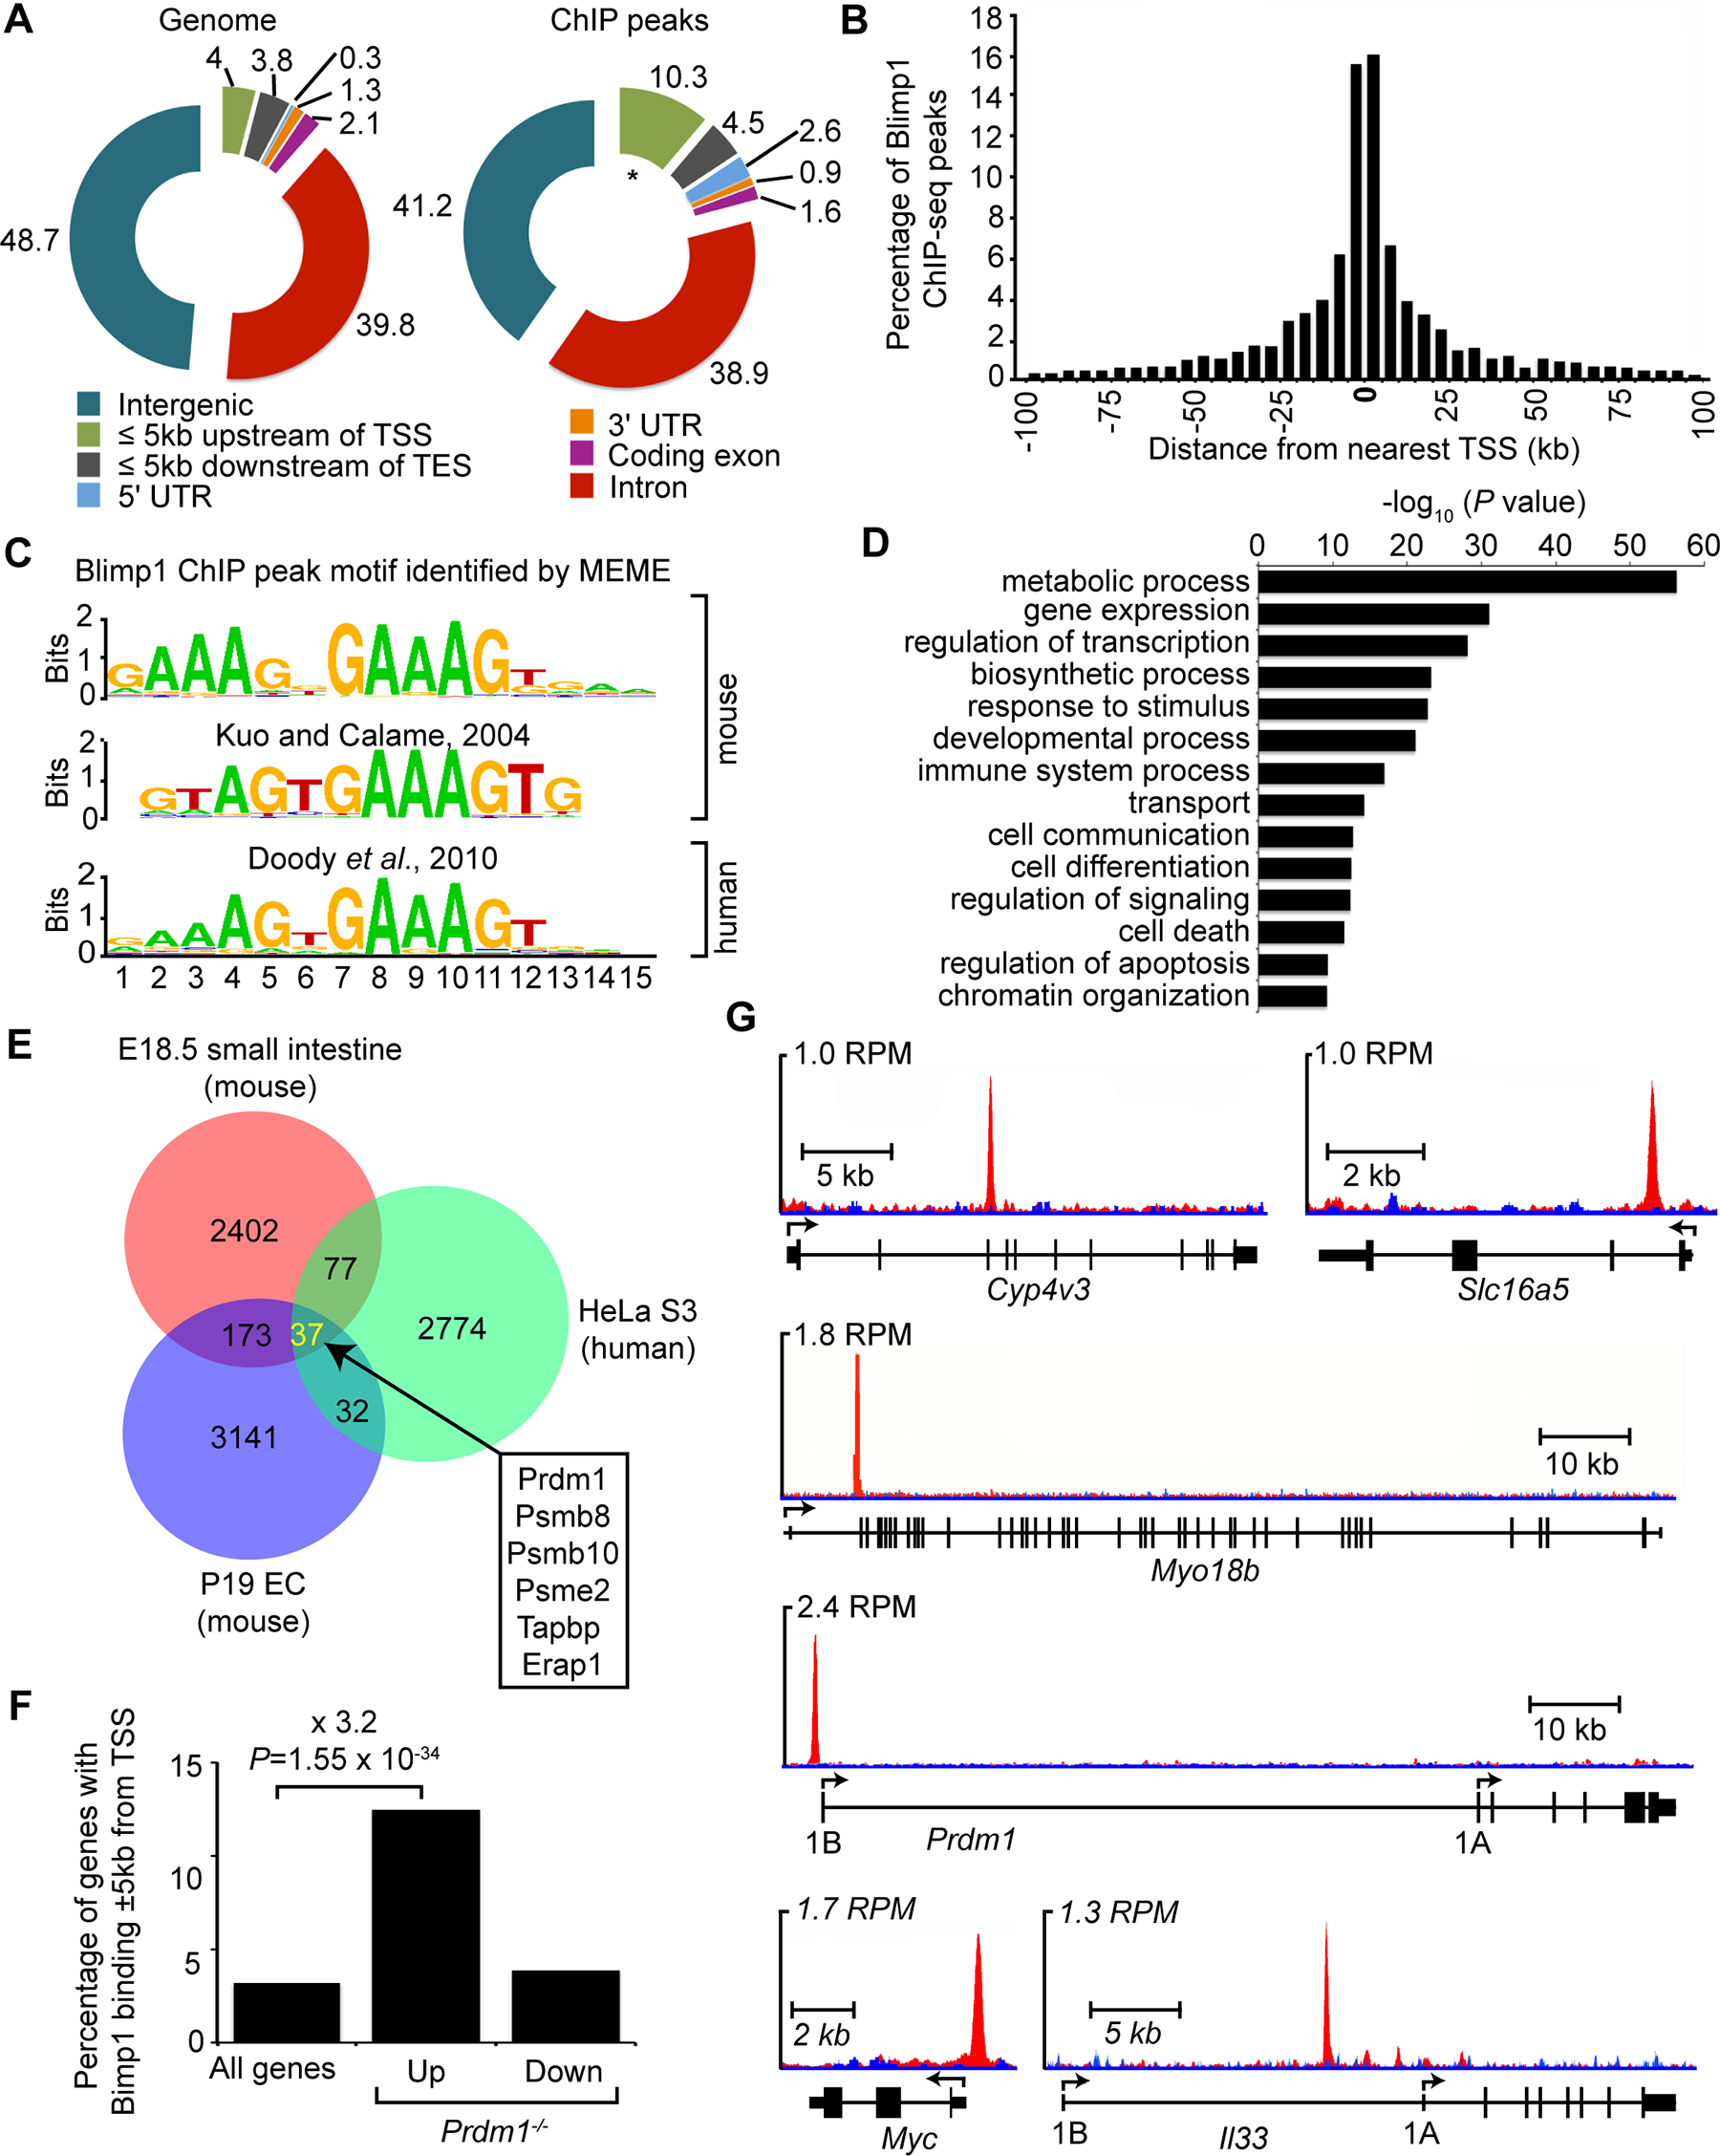 ChIP-seq analysis of genome-wide Blimp1 binding sites in E18.5 small intestine.